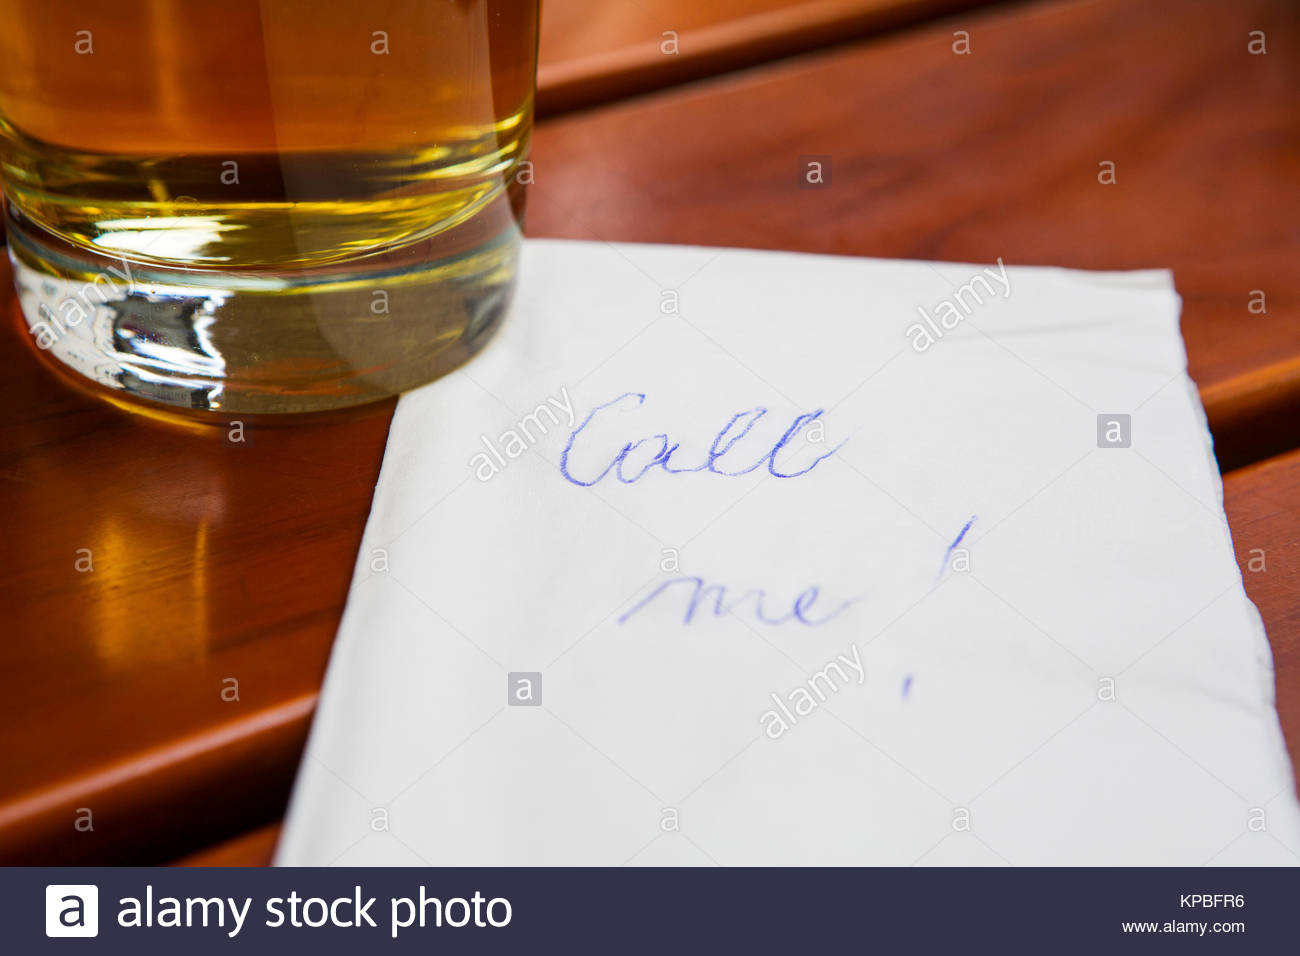 notecall me next to a glass of beer - Stock Image